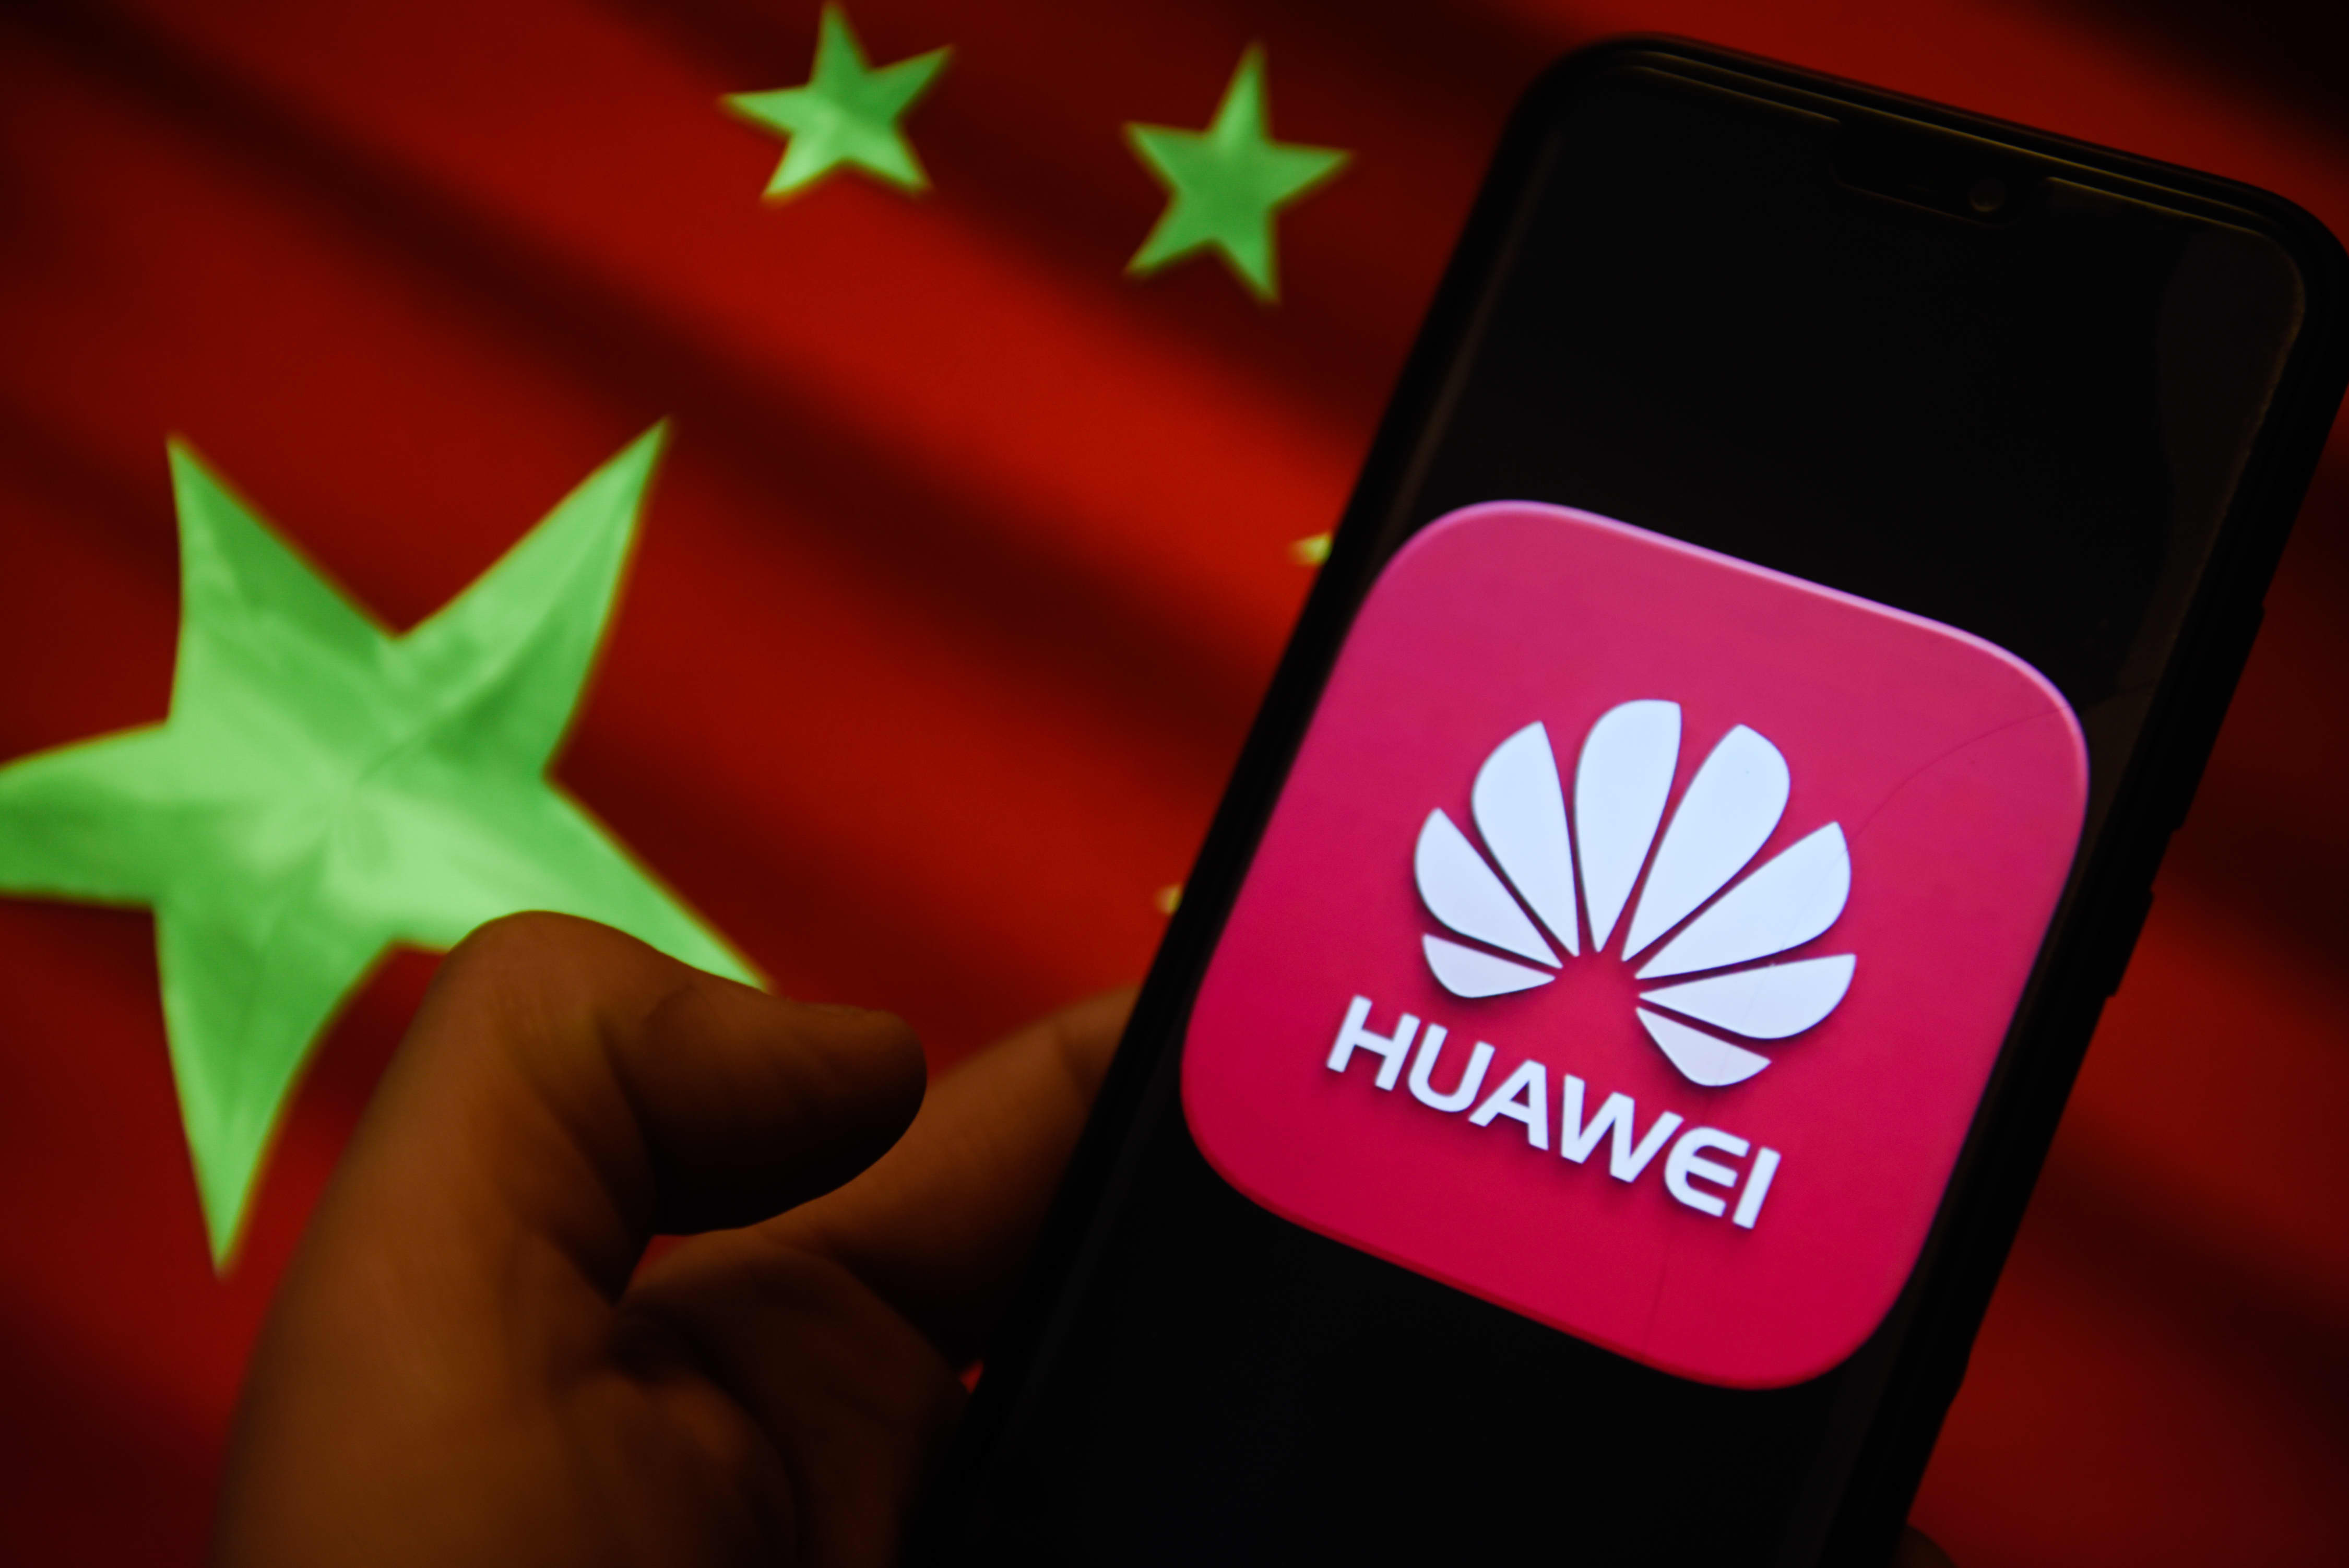 In this photo illustration, the Huawei logo and Chinese flag is seen displayed on an Android mobile phone.